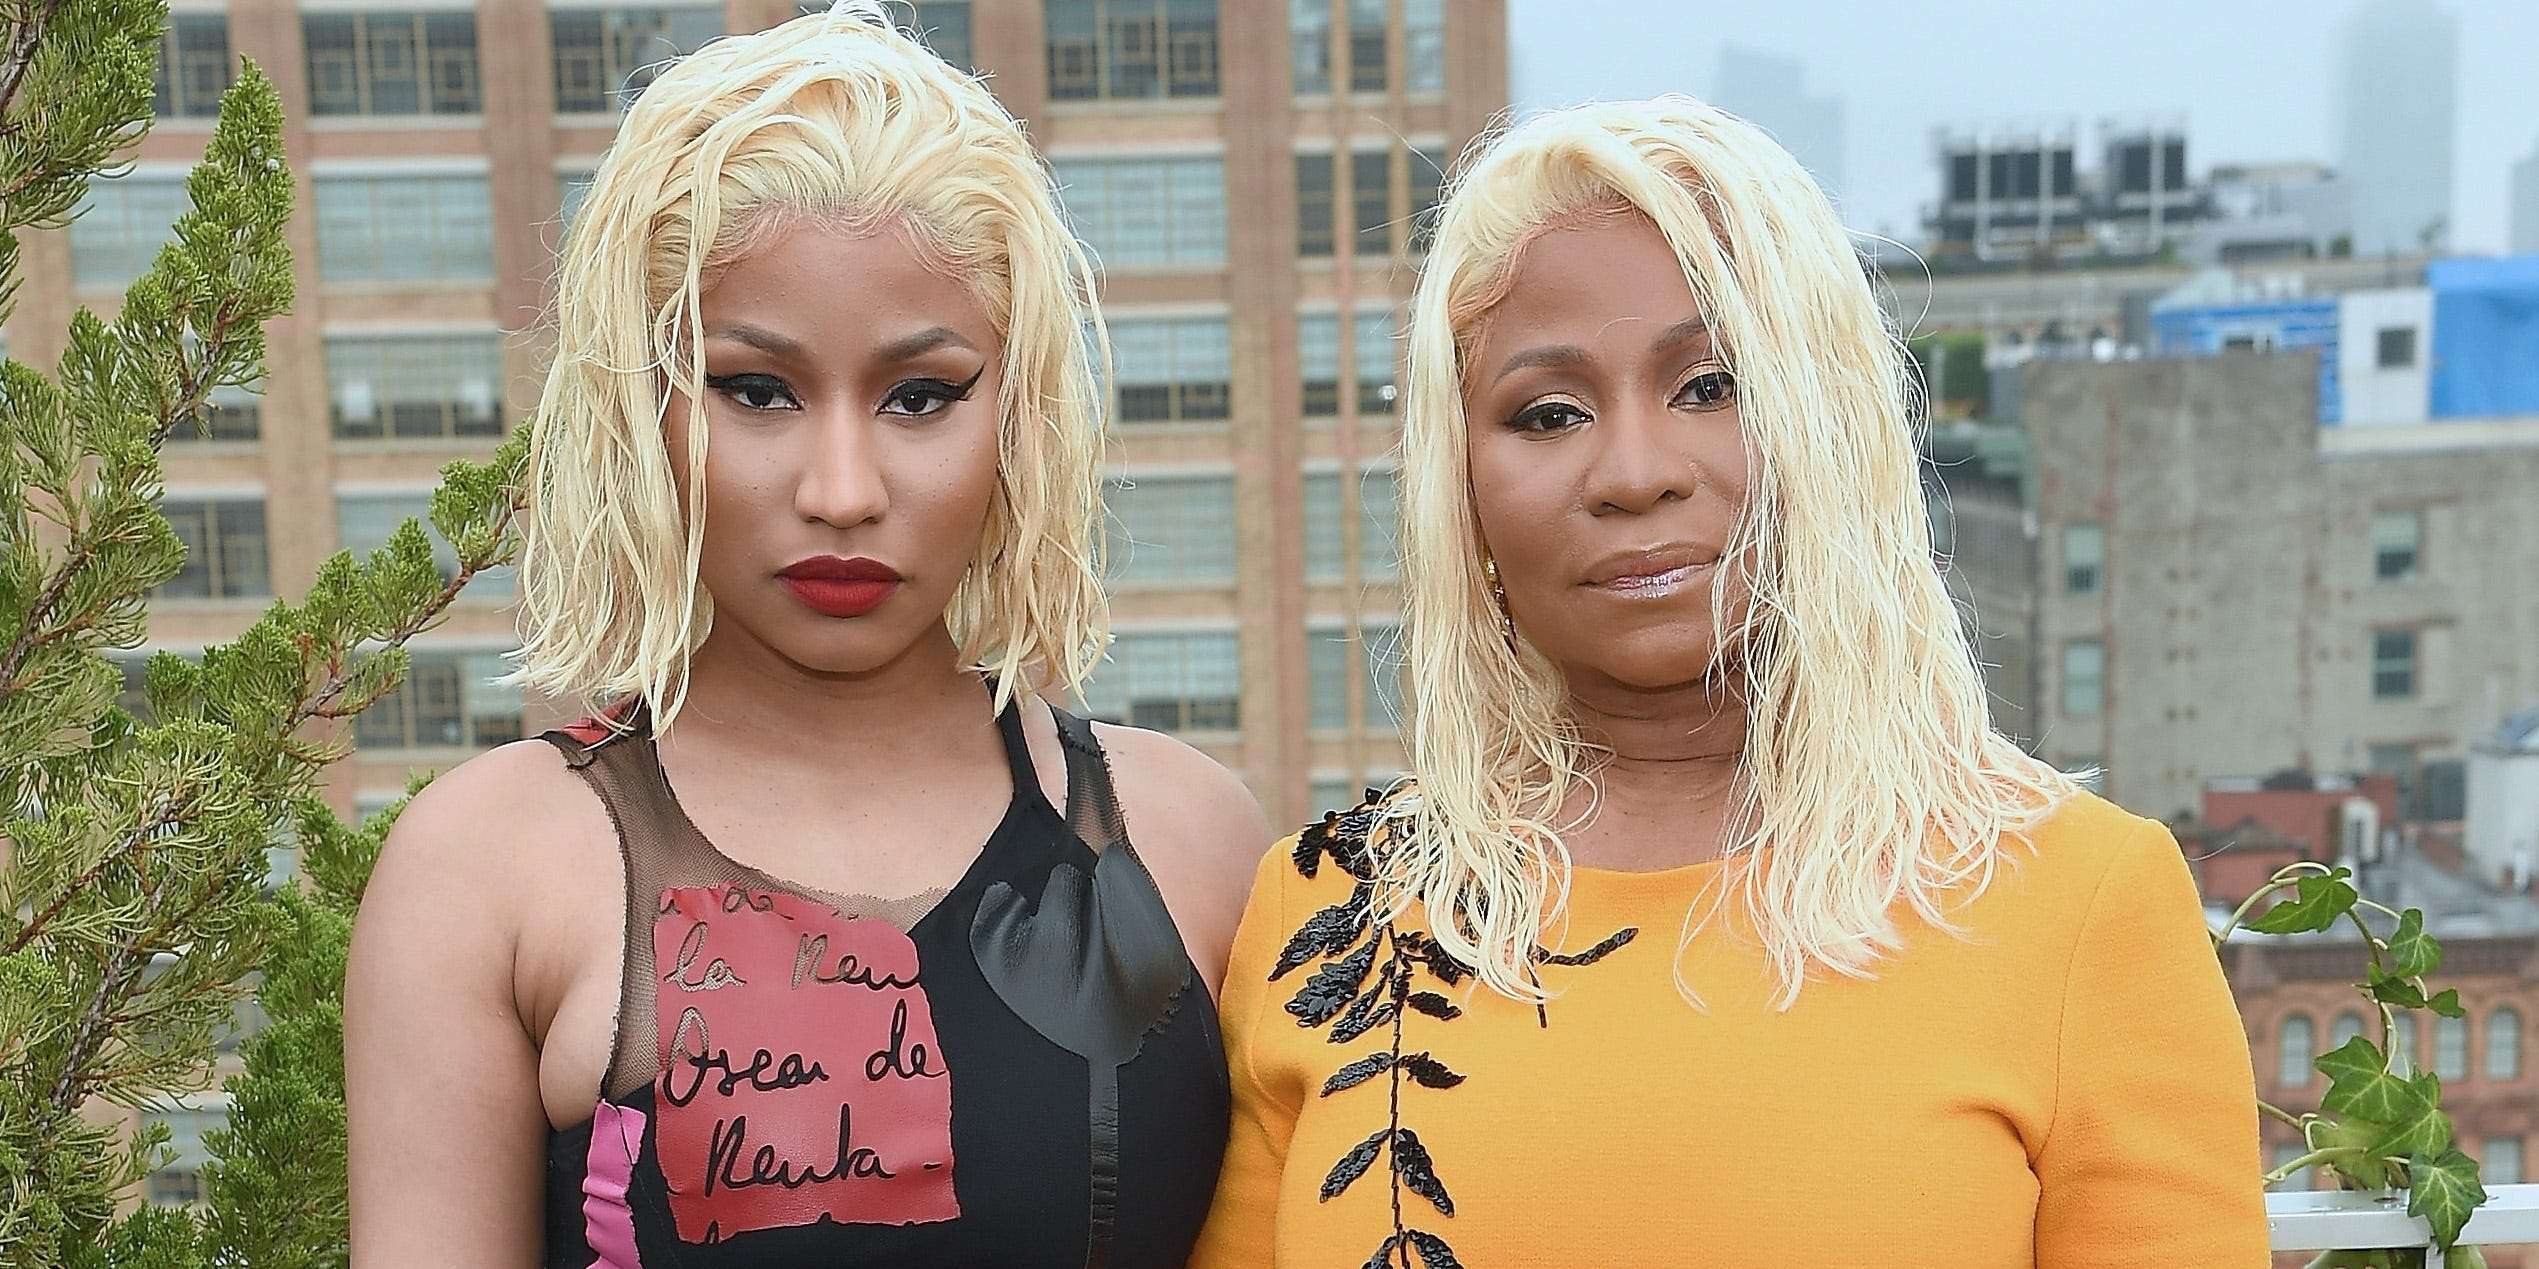 Nicki Minaj's mother filed a $150 million lawsuit against the man charged  in her father's fatal hit-and-run accident | Business Insider India